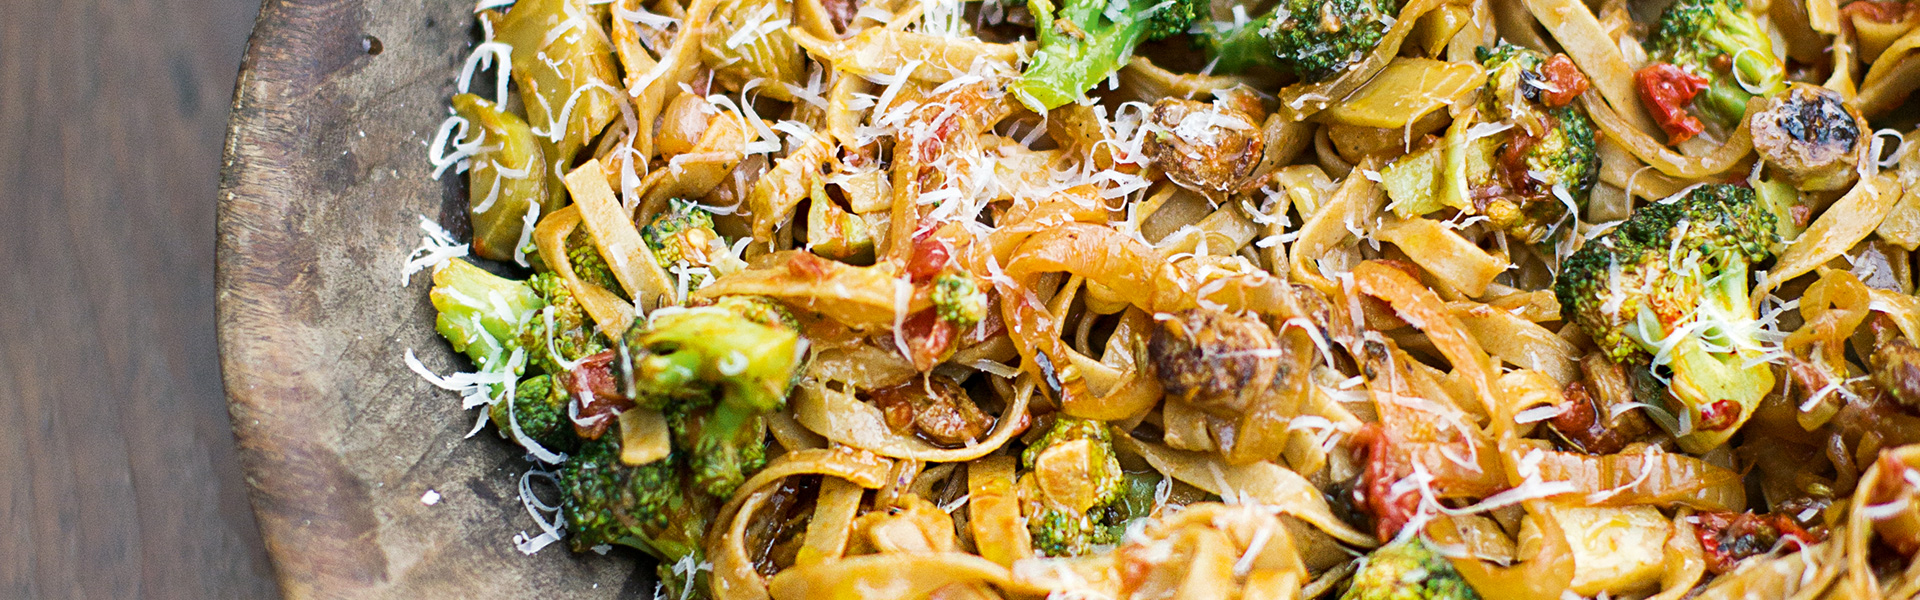 Jamie Oliver: Sausage Pasta, Broccoli, Chilli & Sweet Tomatoes Recipe